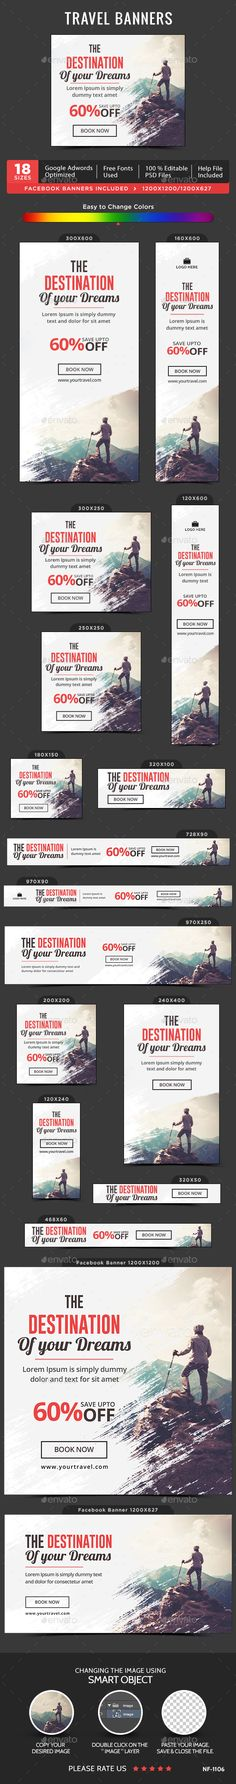 """Travel Web Banners Template PSD. Download here: <a href=""""http://graphicriver.net/item/travel-banners/15023078?ref=ksioks"""" rel=""""nofollow"""" target=""""_blank"""">graphicriver.net/...</a>"""